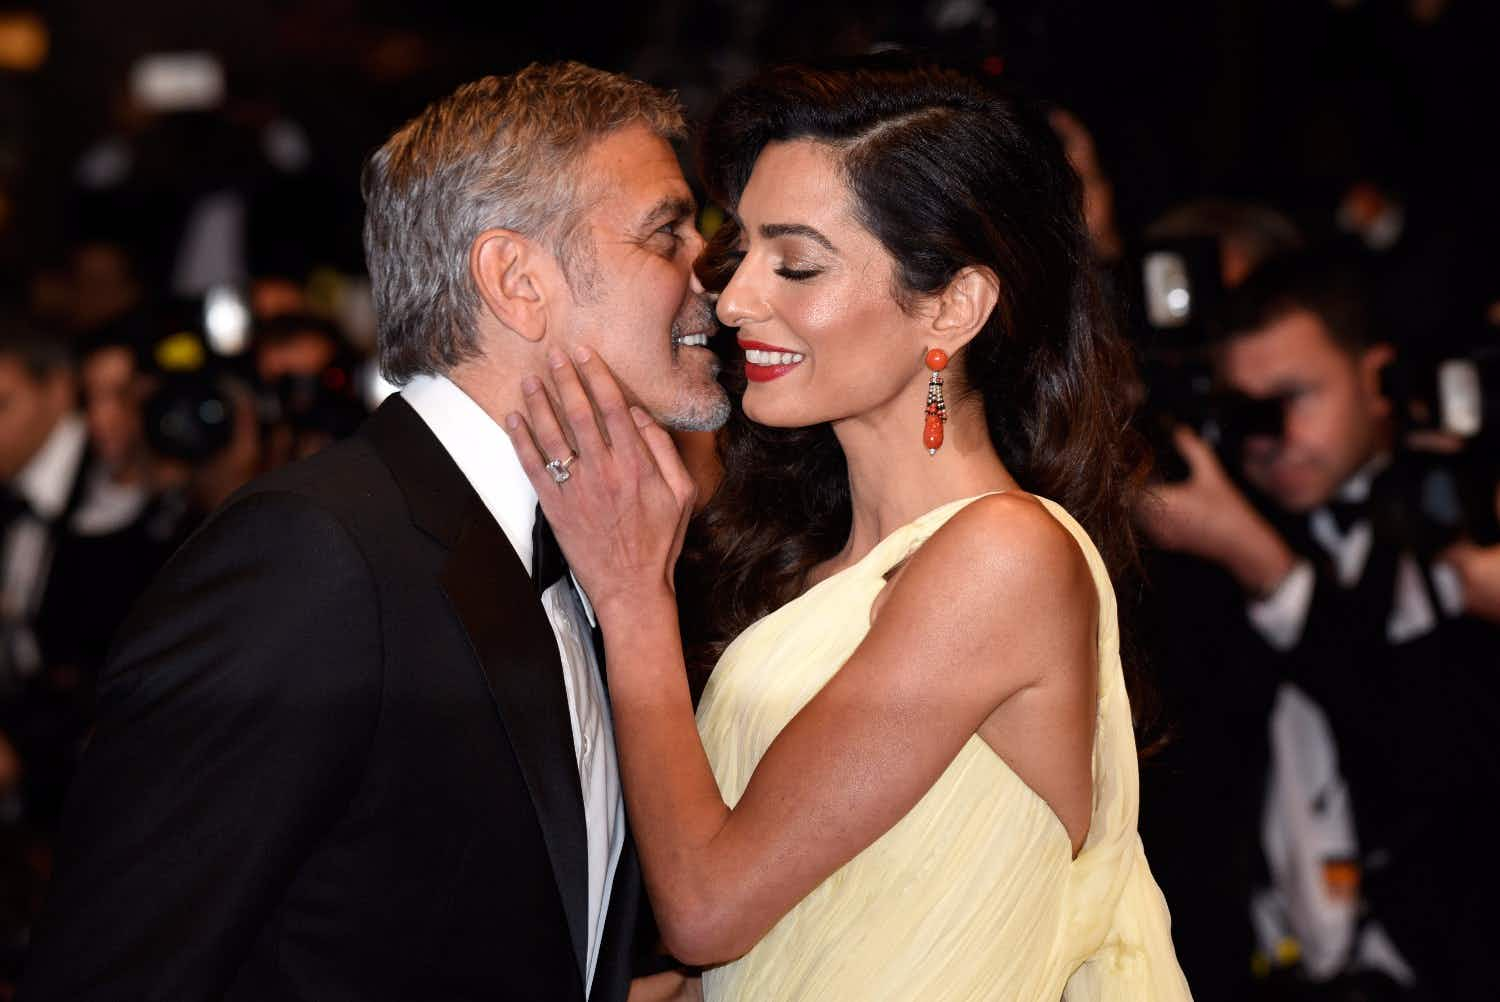 Even George and Amal Clooney have a stressful time flying with babies